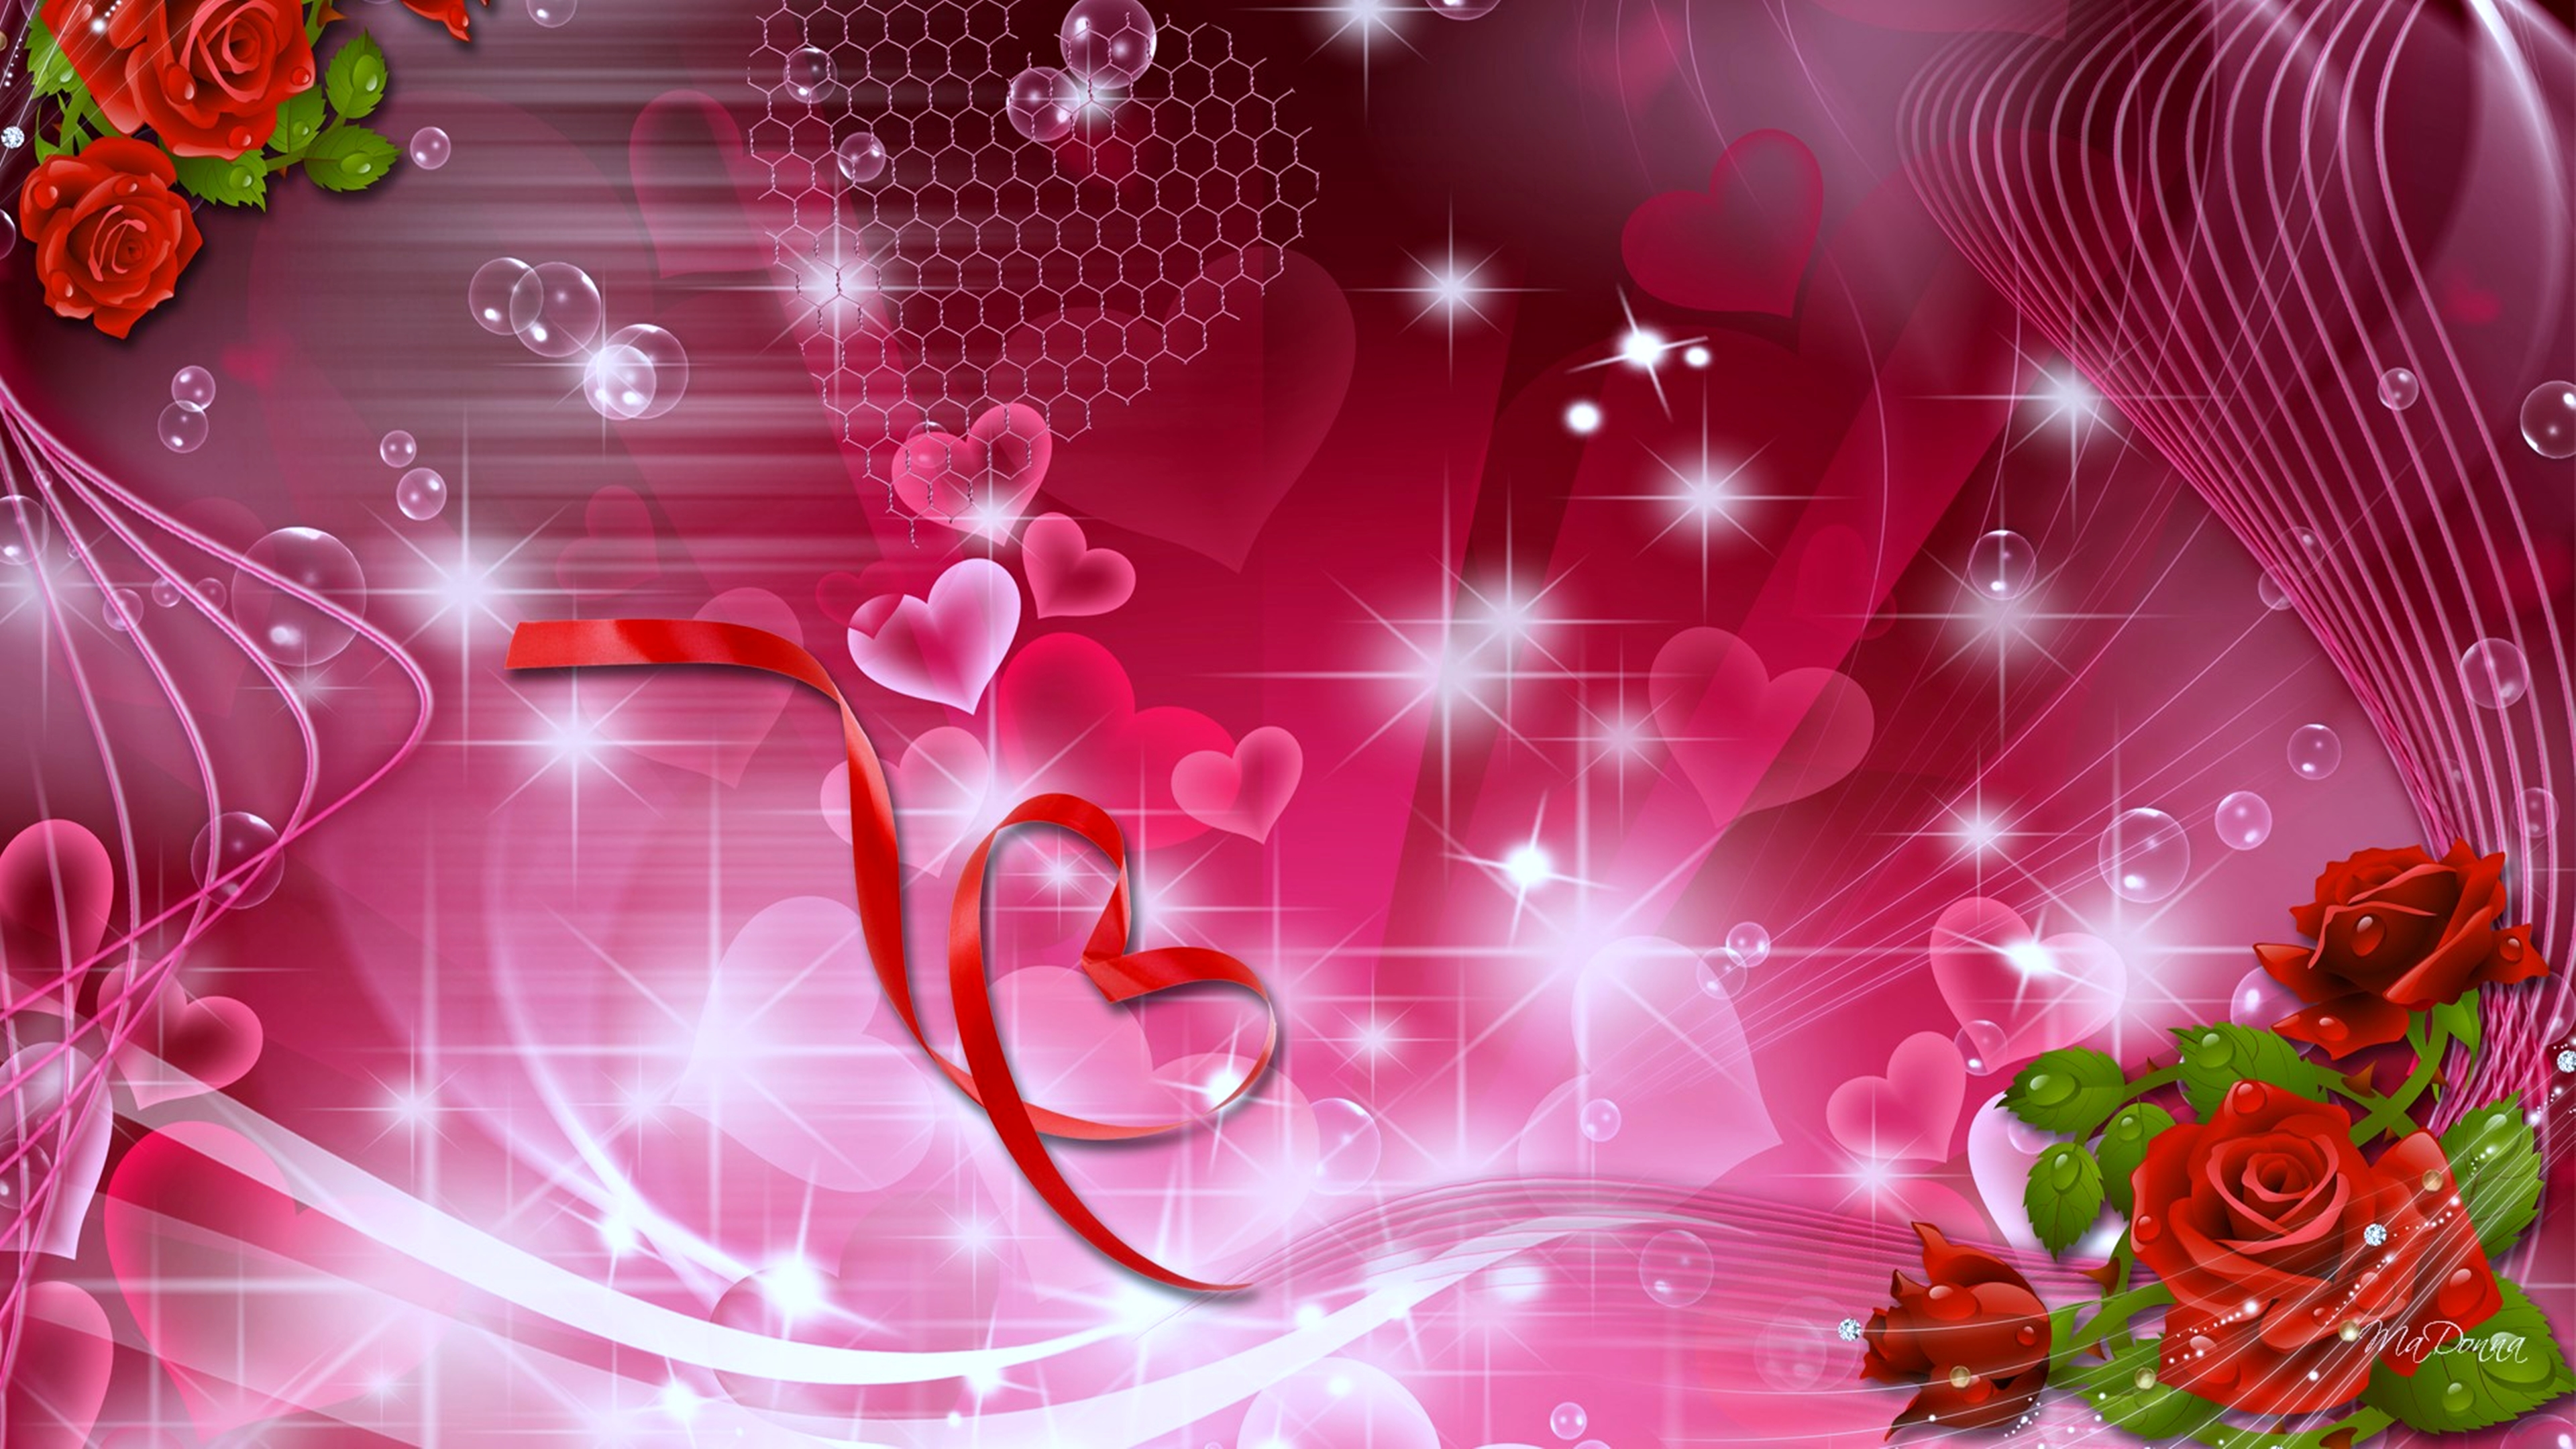 Love Wallpaper Gift : Love Backgrounds, Pictures, Images